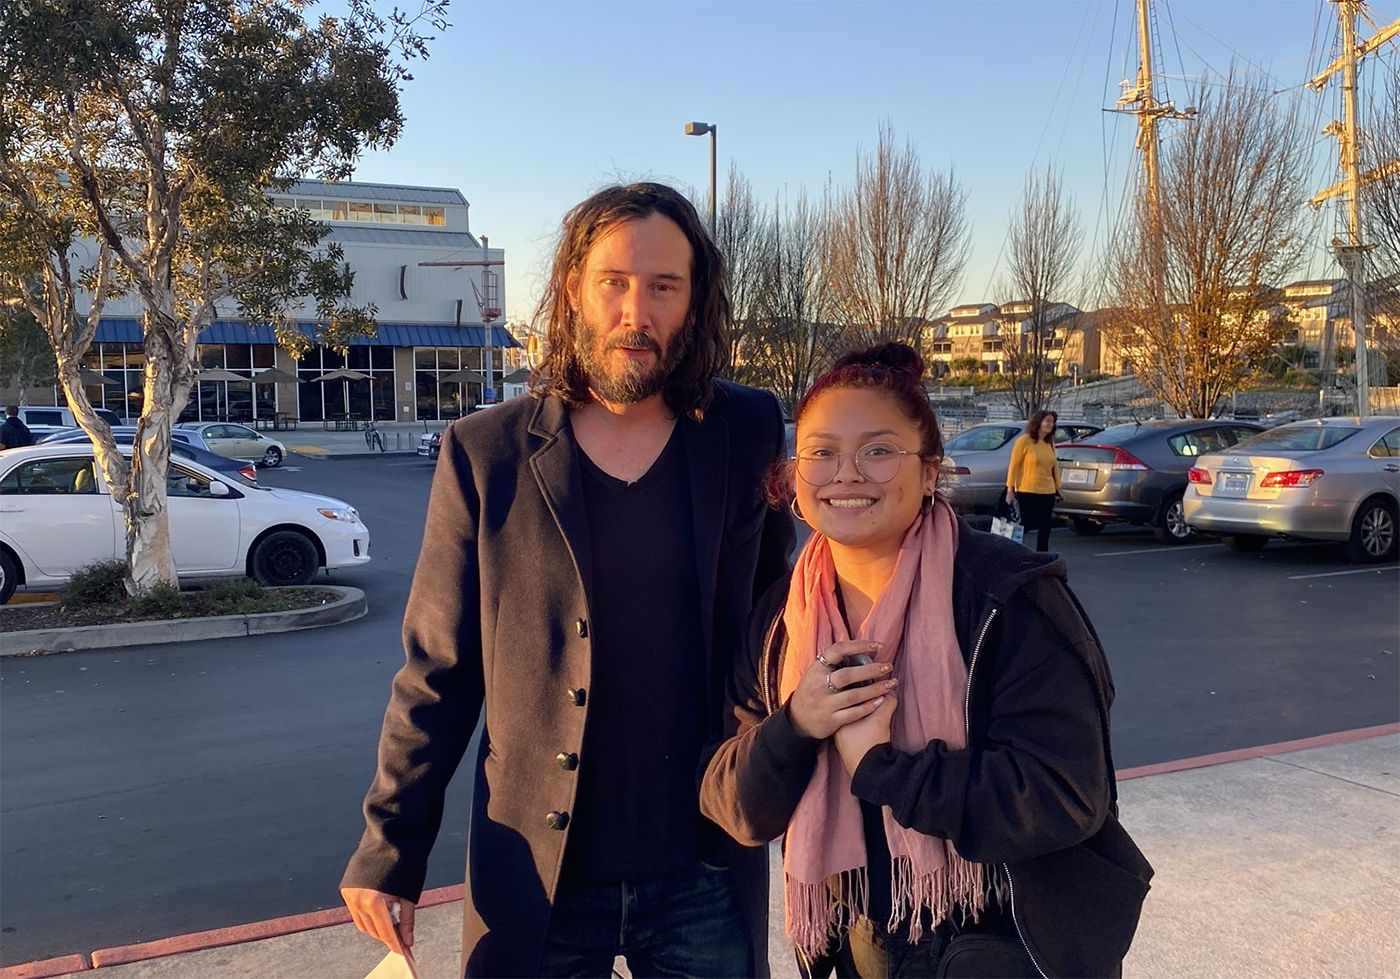 Keanu Reeves, Maybe Already In Town For the 'Matrix 4' Shoot, Had Baskin-Robbins In Alameda